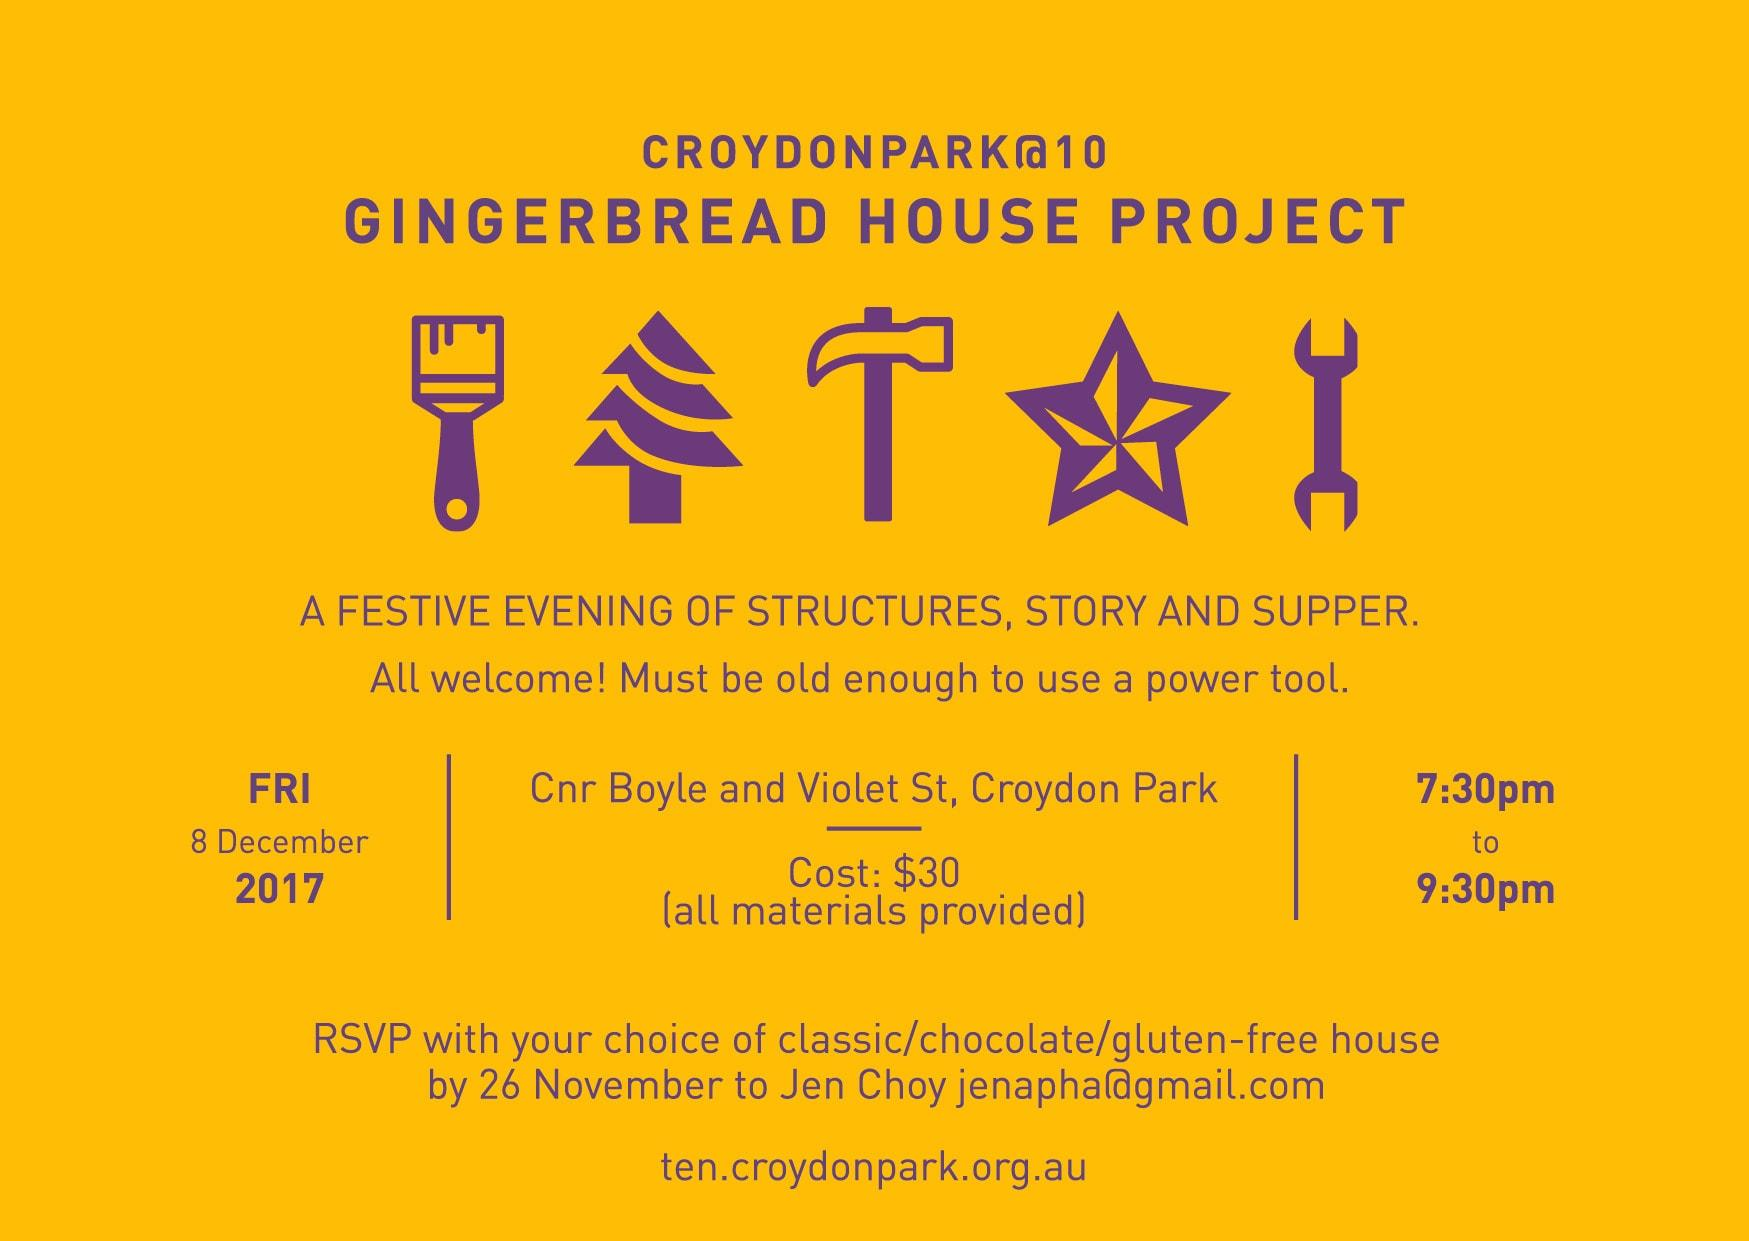 Gingerbread House Project: calling all men and women builders and decorators!